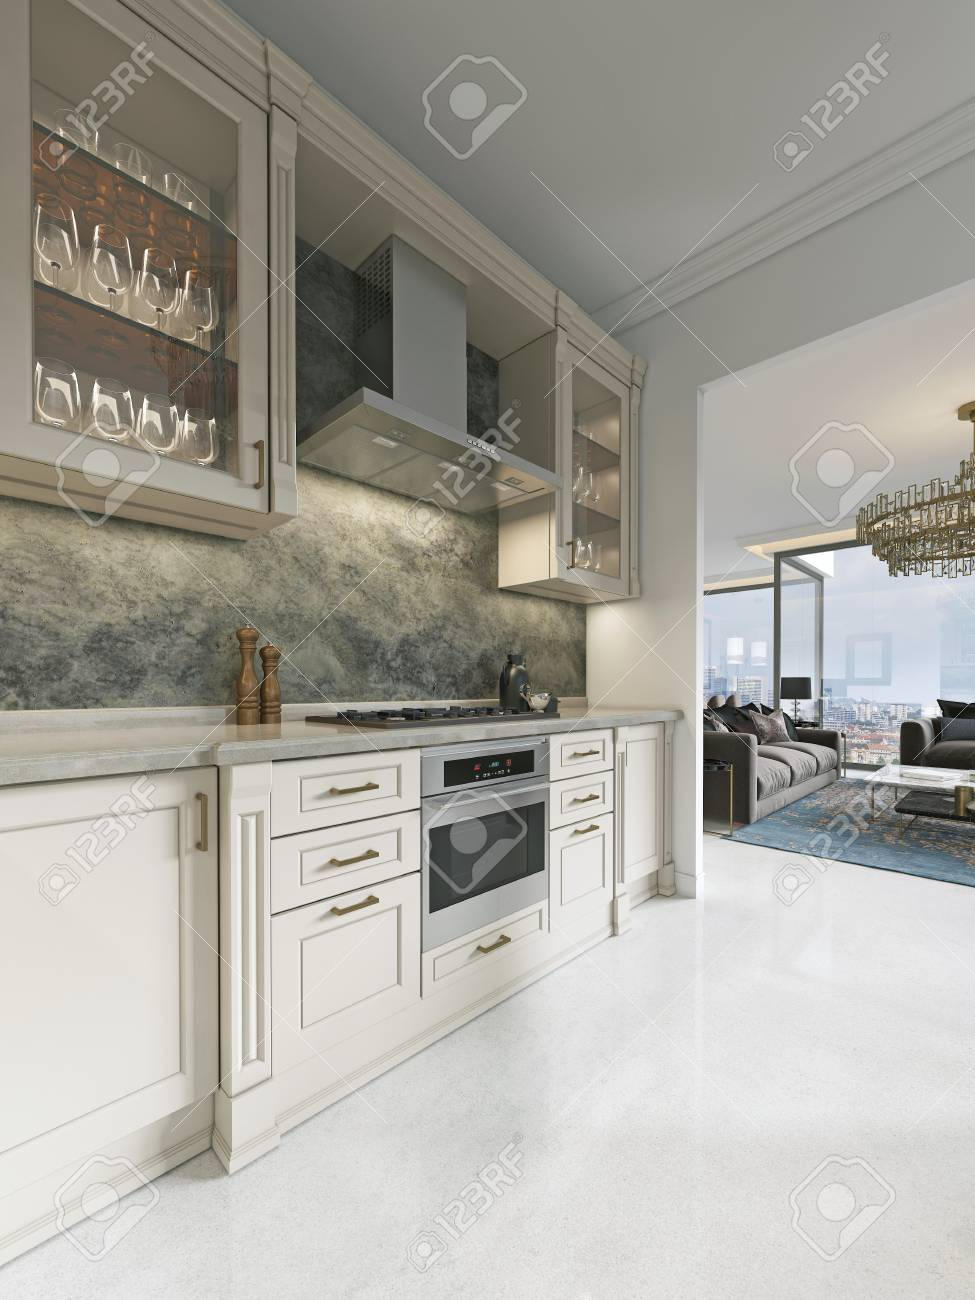 Modern Art Deco Kitchen With Classic Elements Glass Facade And Stock Photo Picture And Royalty Free Image Image 113307368